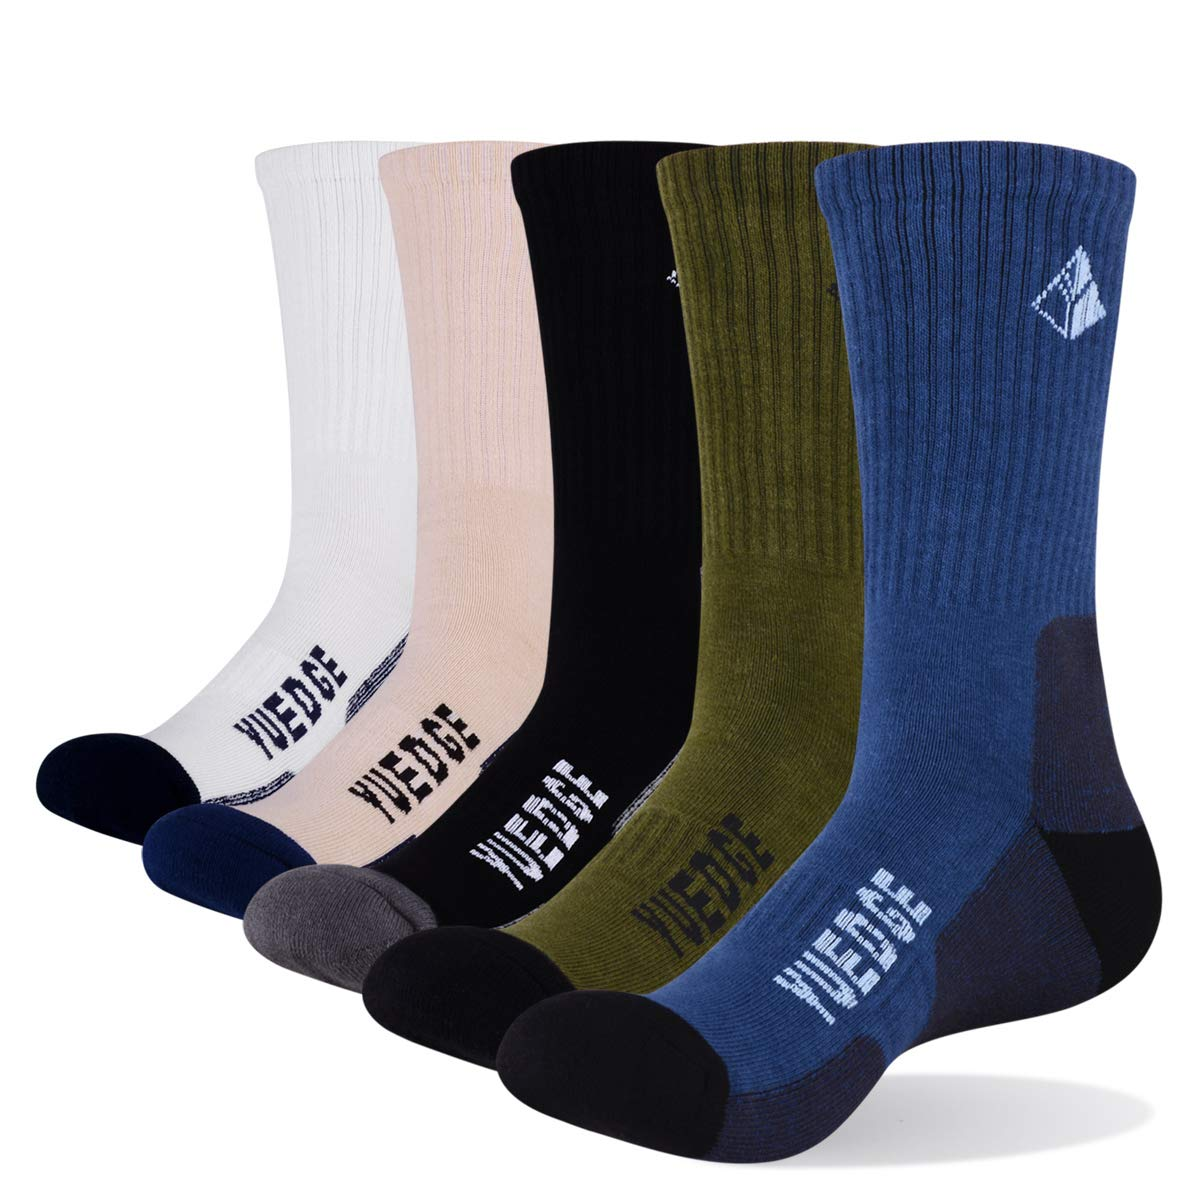 YUEDGE 5 Pairs Men's Cushion Crew Outdoor Sports Workout Hiking Socks by YUEDGE